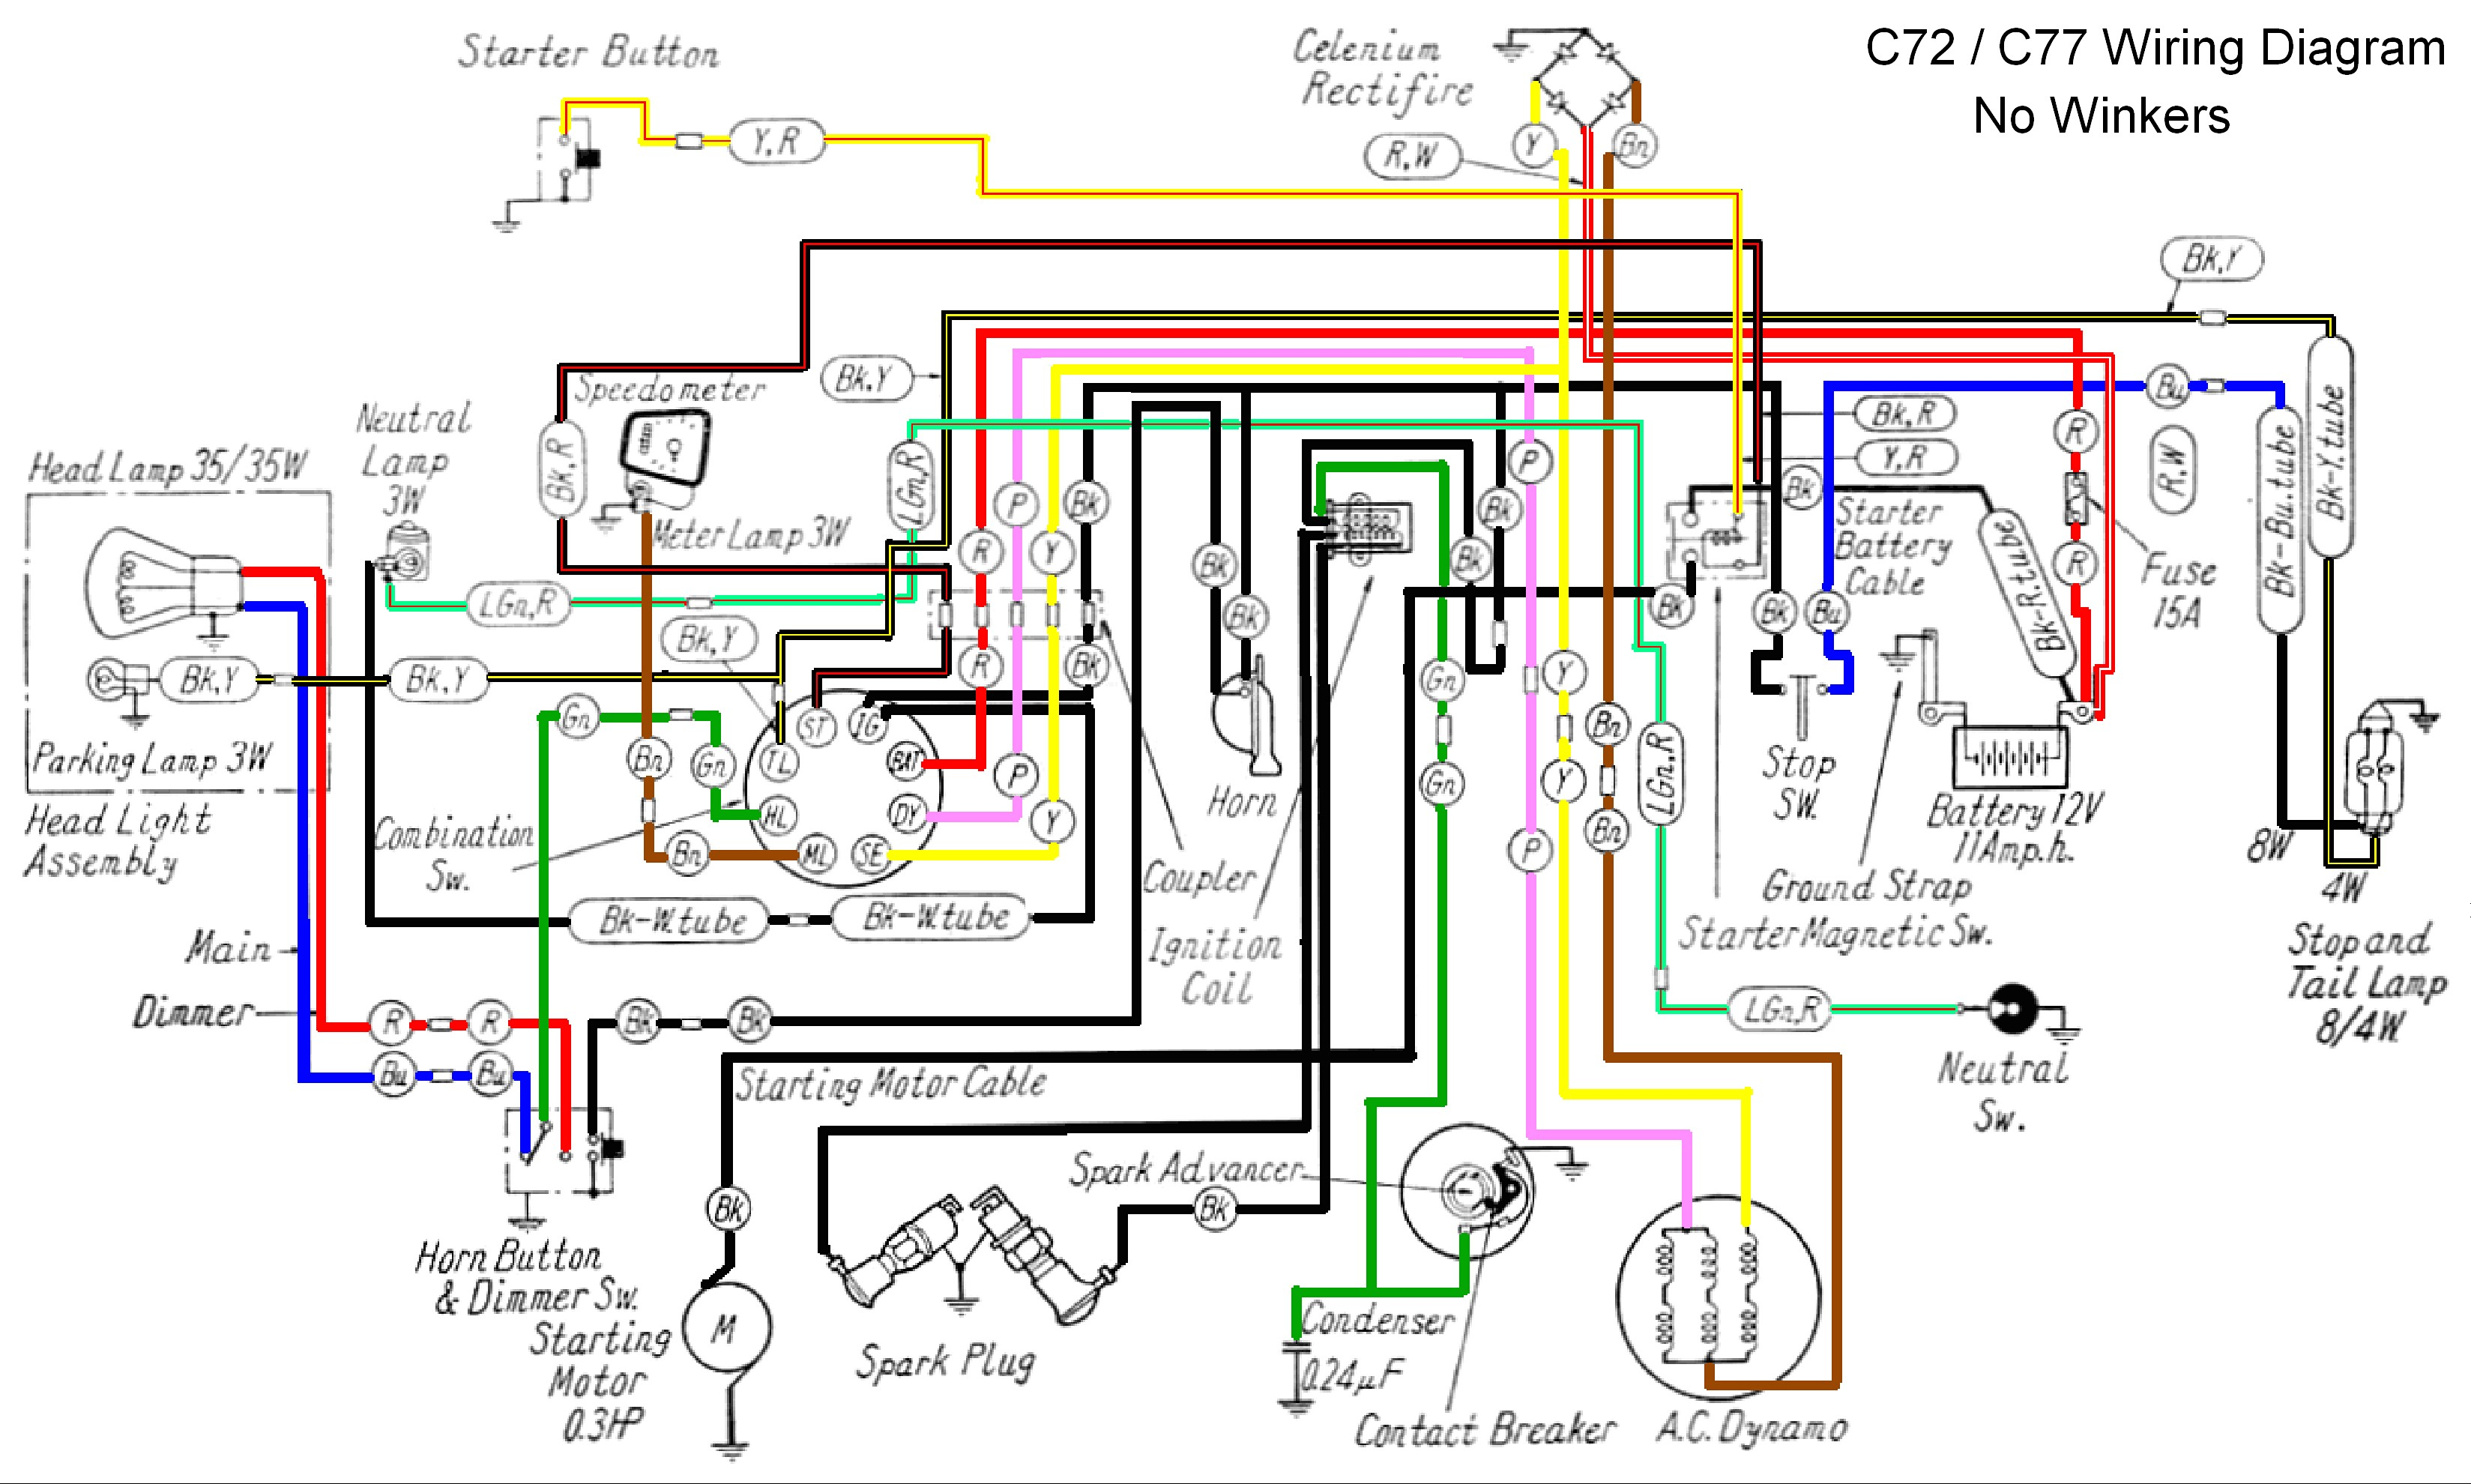 small resolution of 2011 harley road king wiring diagram for dummies wiring diagram view 2011 harley road king wiring diagram for dummies